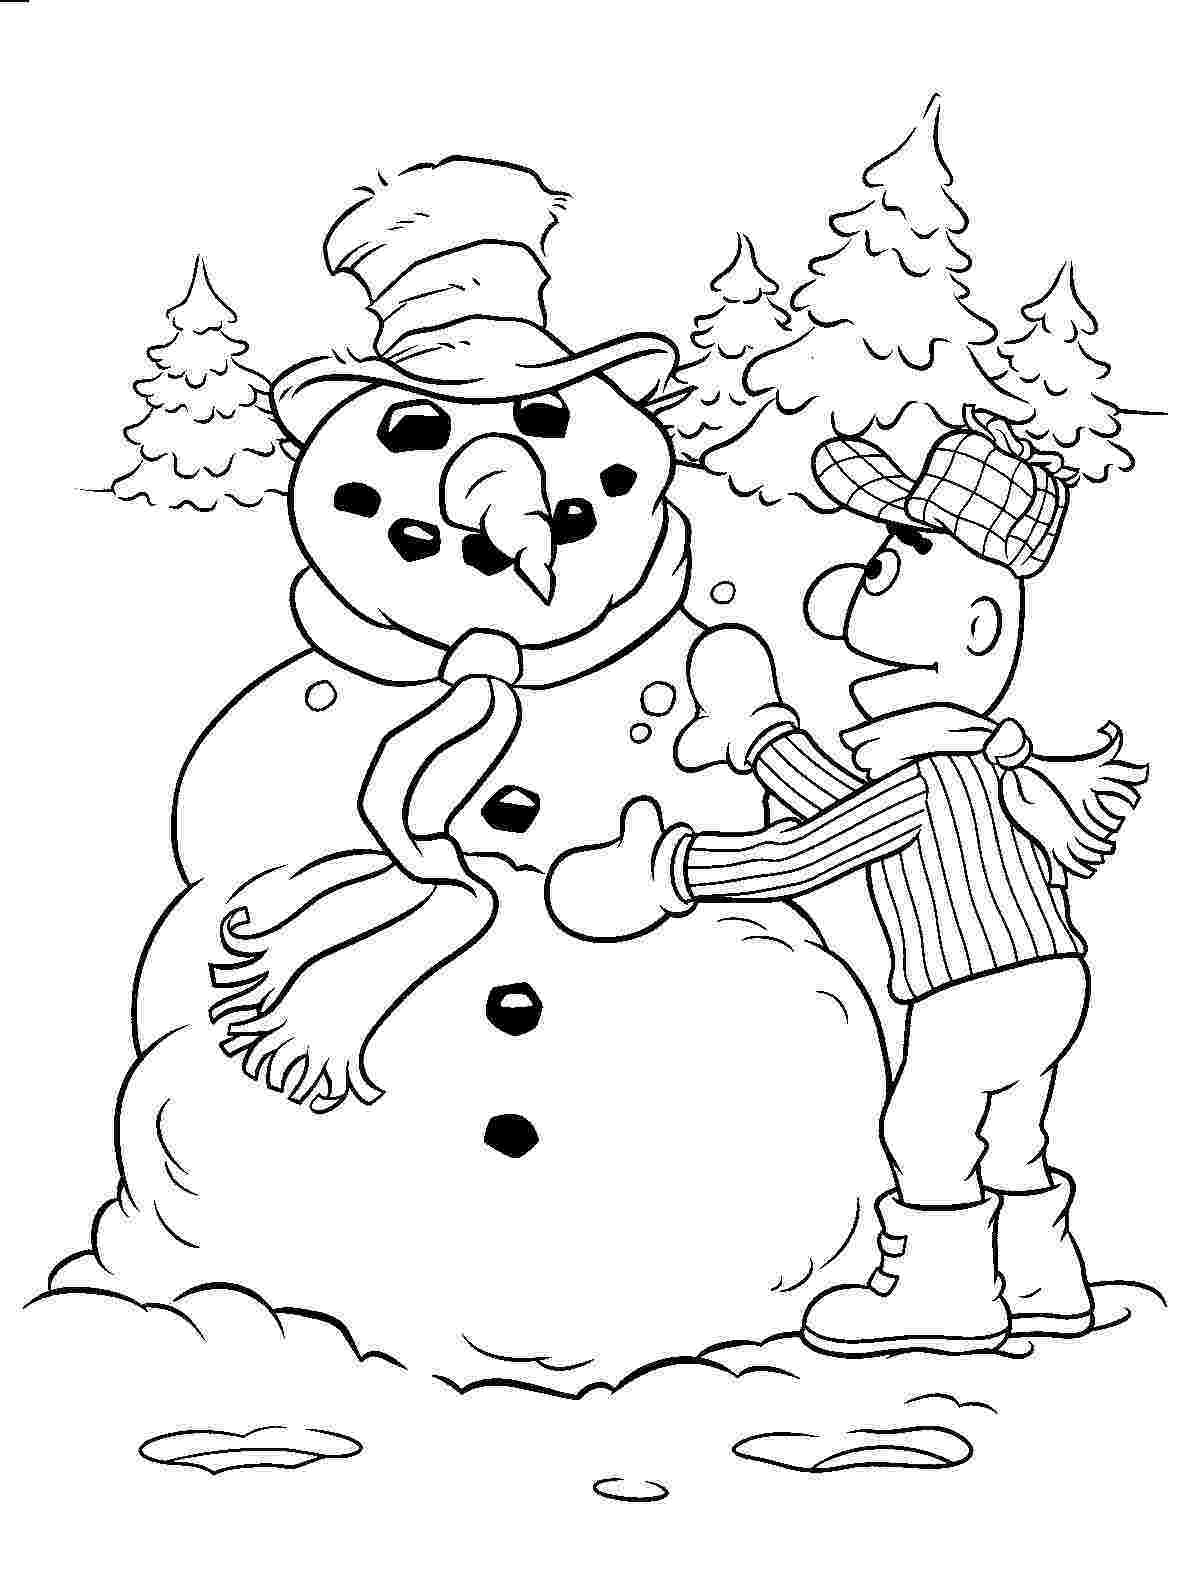 coloring pages of sesame street characters sesame street coloring pages coloring pages for kids characters sesame pages street of coloring